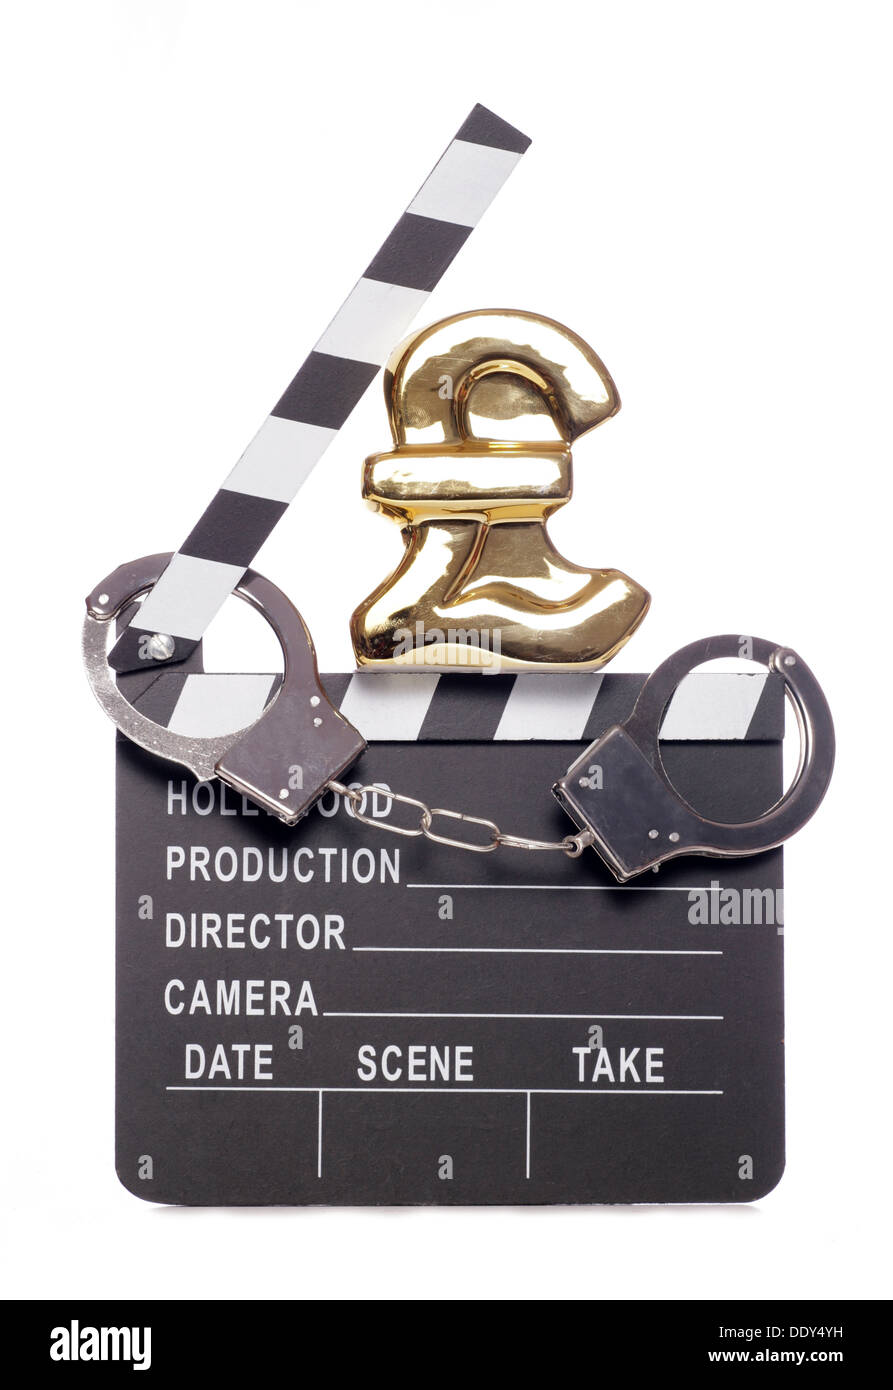 Piracy costing money in the film industry studio cutout - Stock Image